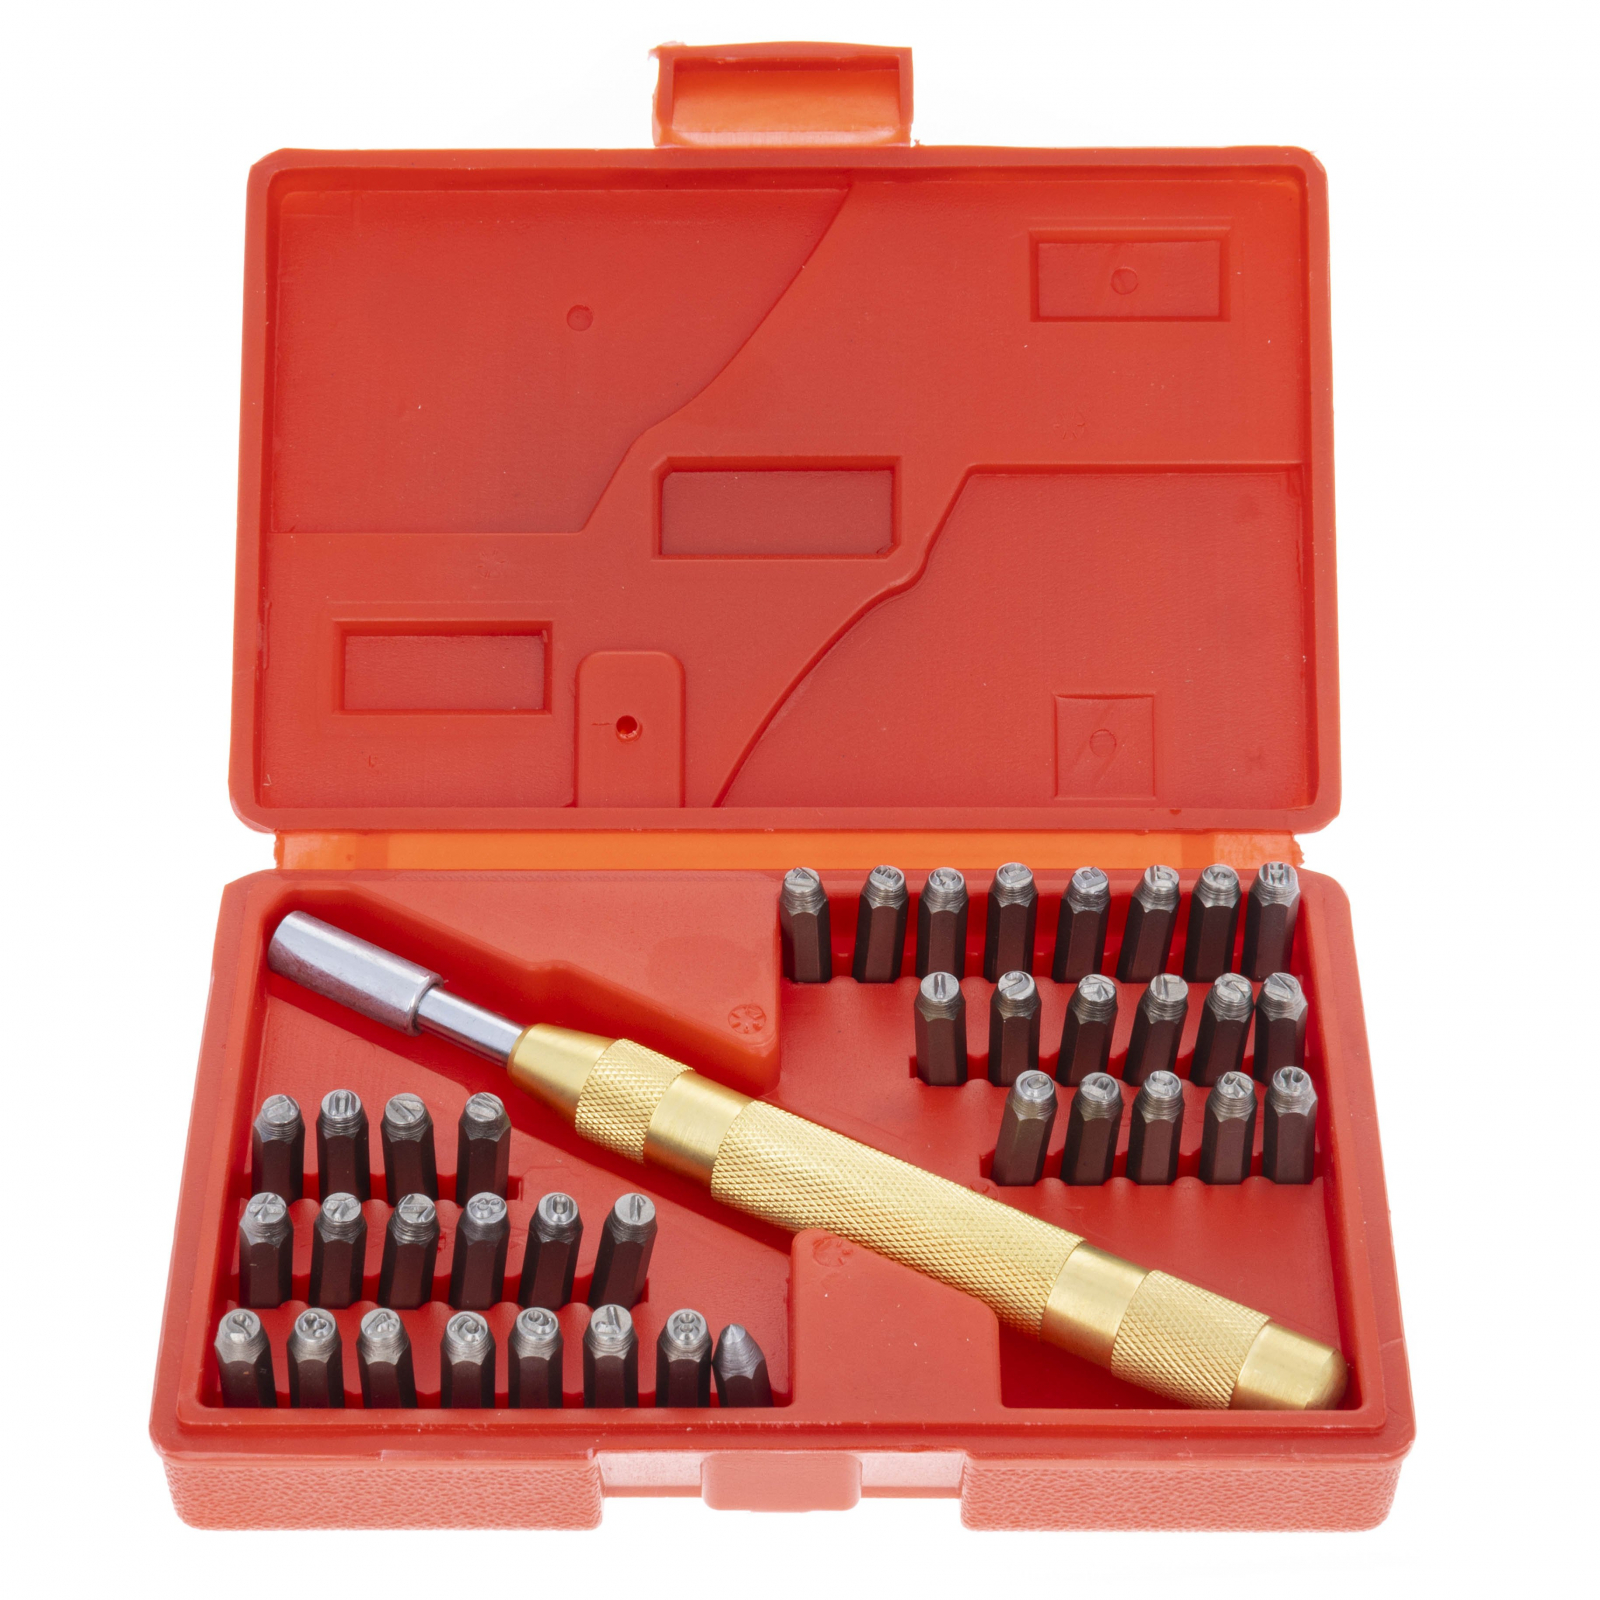 Universal Hobby Number and Letter Stamping Set Automatic Punch Crafts 38 Pieces